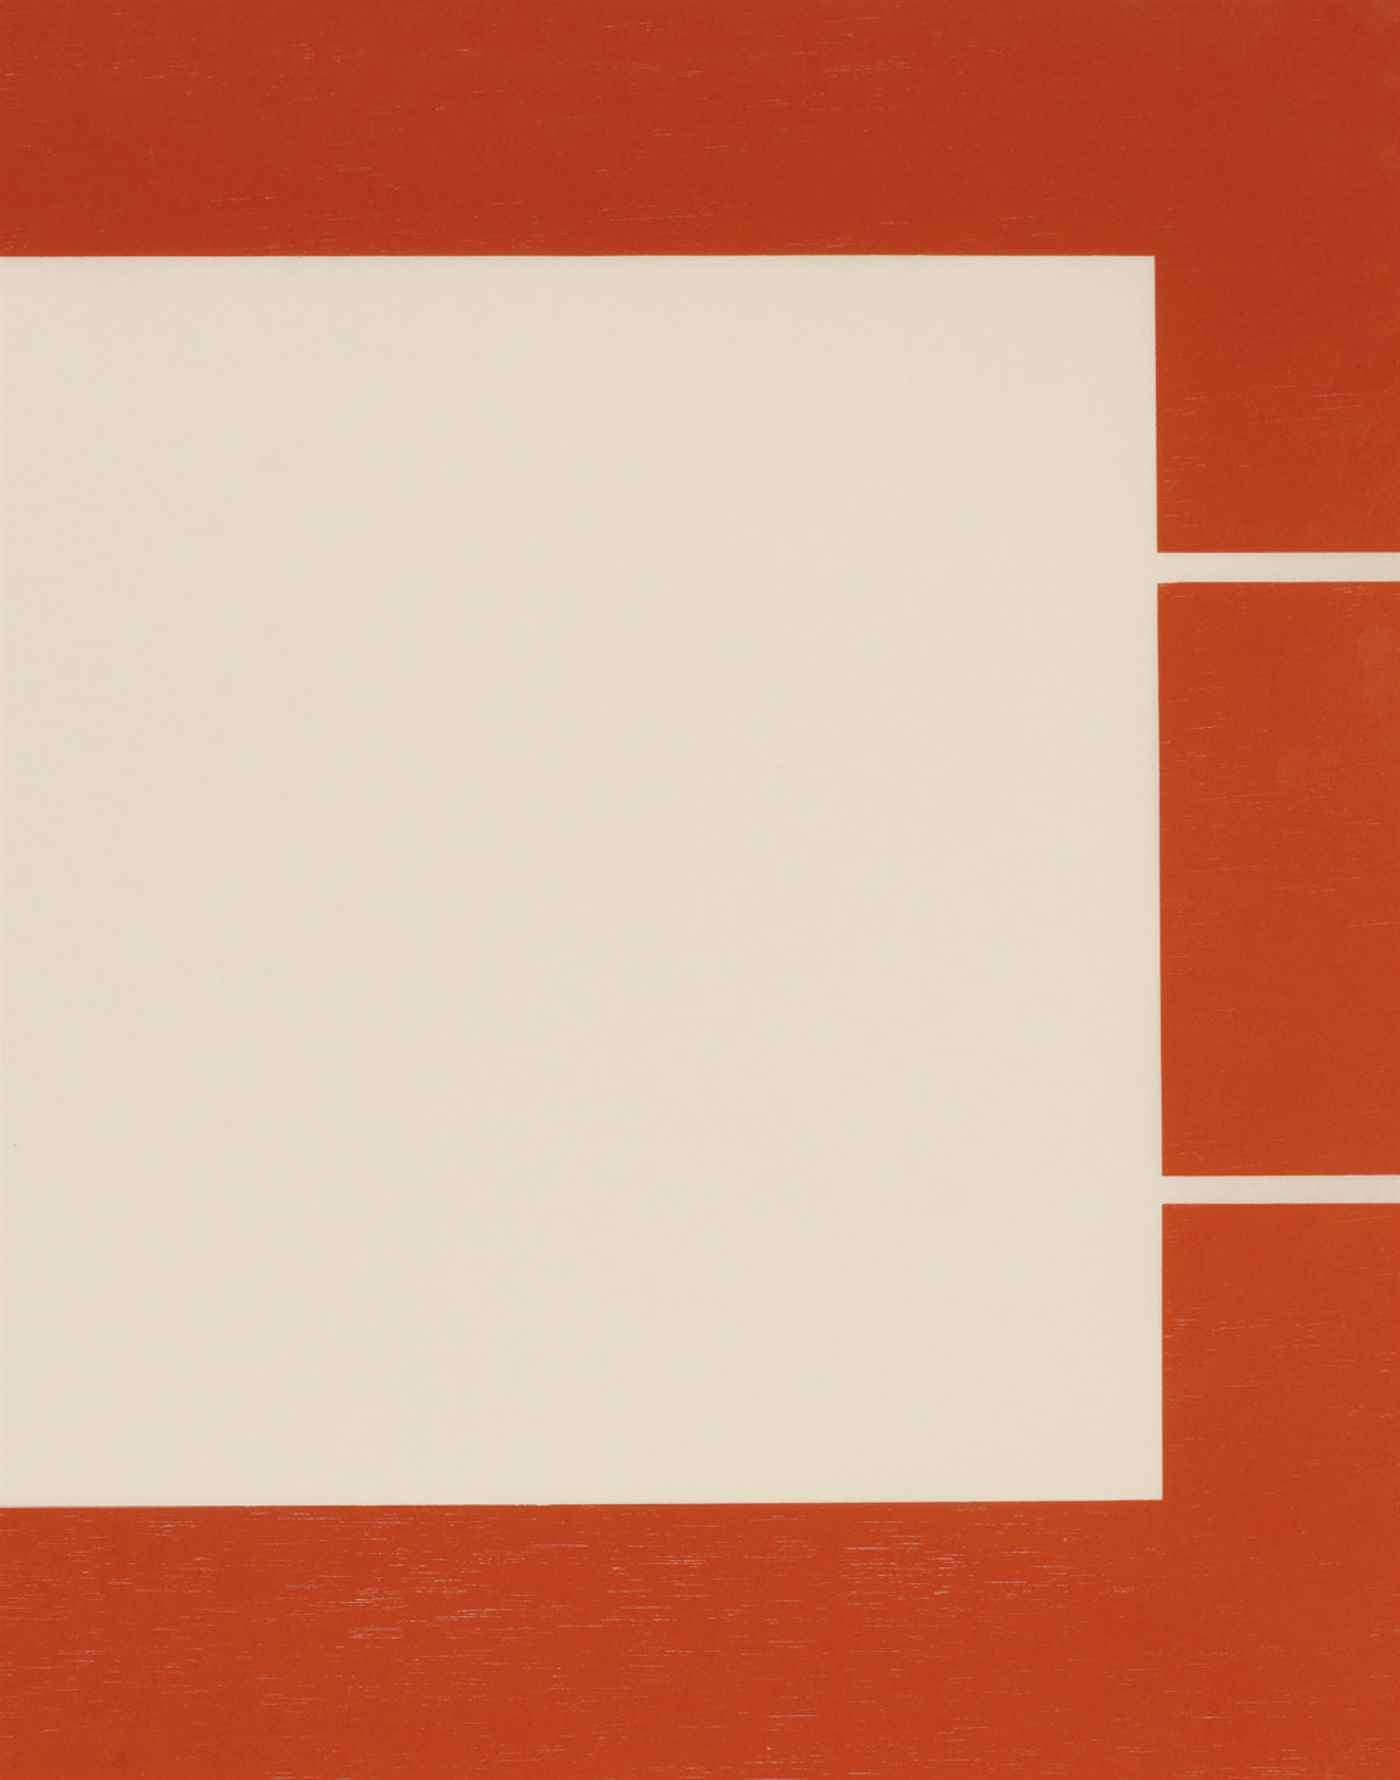 Prints & Multiples featuring T auction at Christies